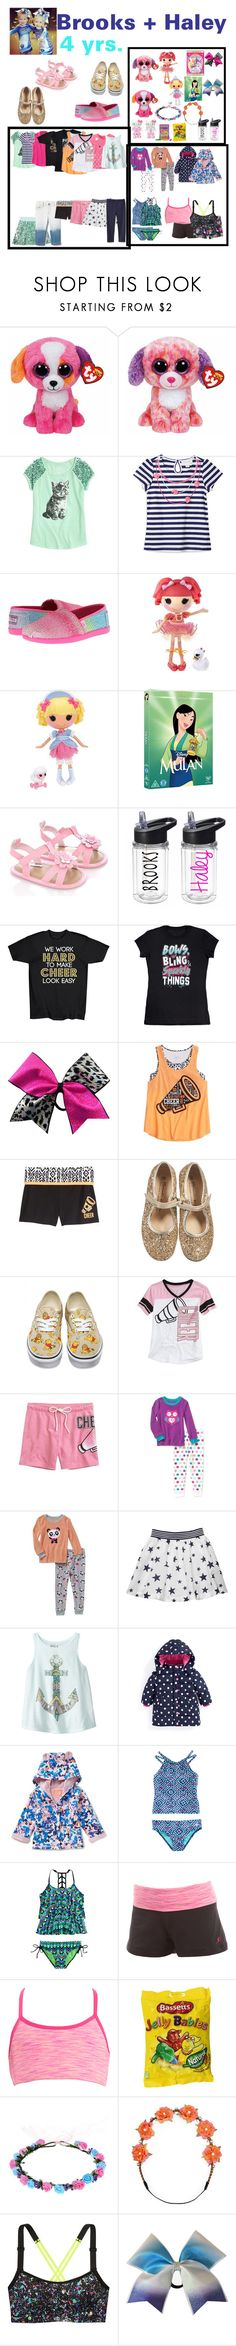 """Brooks and Haley(4)"" by laylaitaly ❤ liked on Polyvore featuring Skechers, Lalaloopsy, Hello Kitty, Manuela de Juan, Billabong, Joules, Carole and Victoria's Secret"